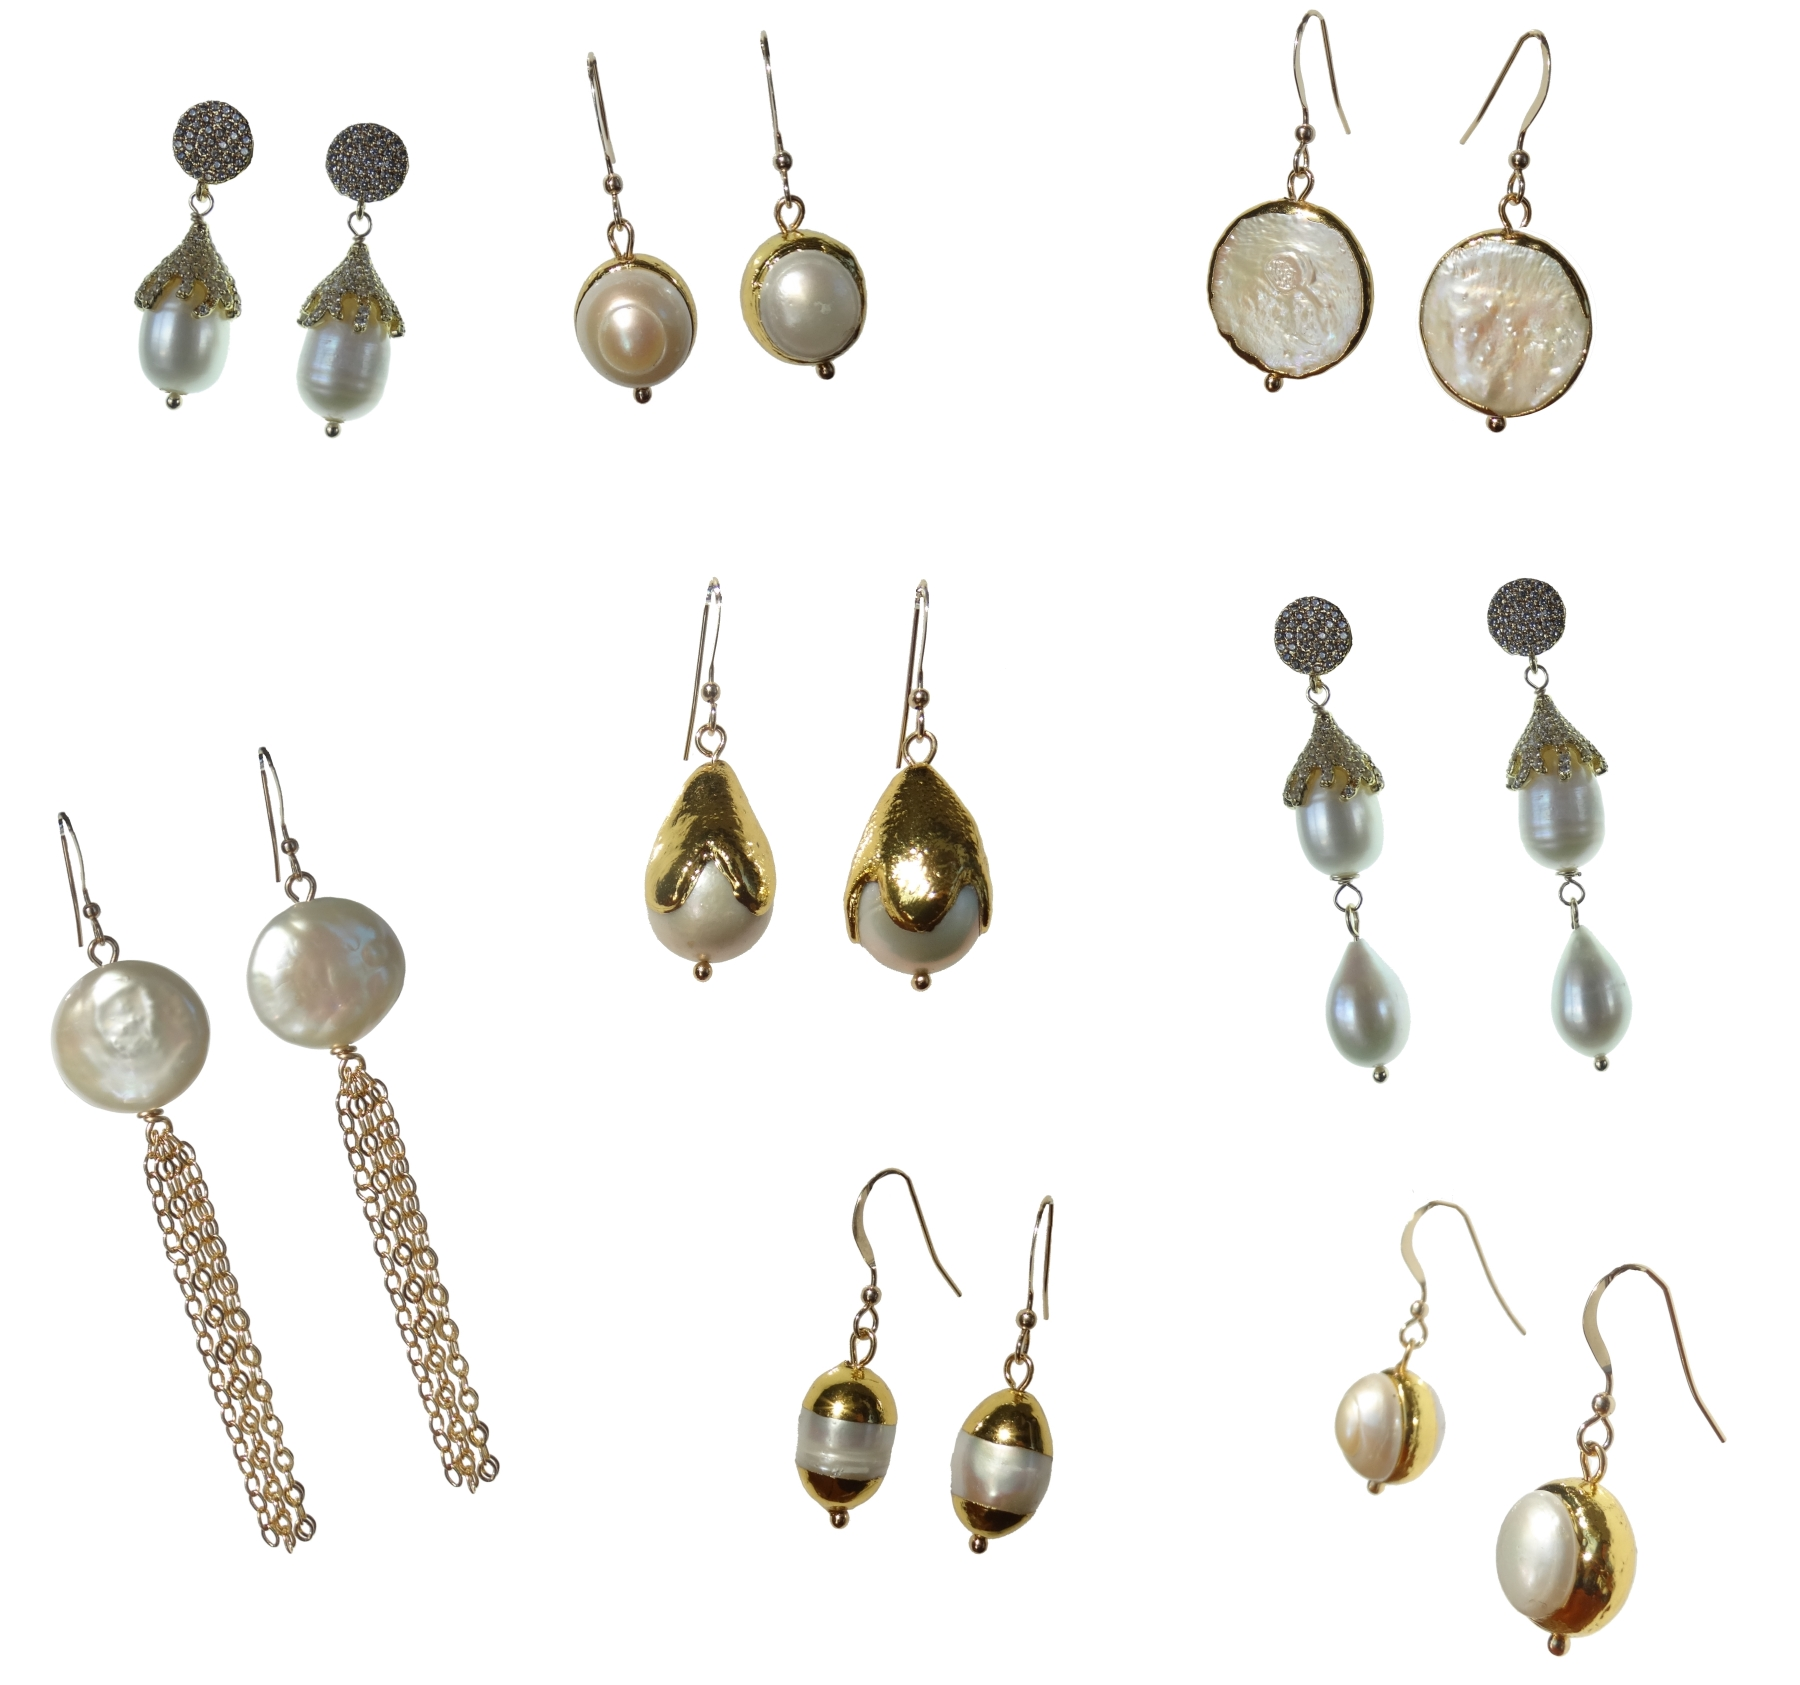 La Perle Collection - Authentic Pearls Detailed with GoldClassic, Sophisticated & ElegantEvery woman needs PEARL earrings!!